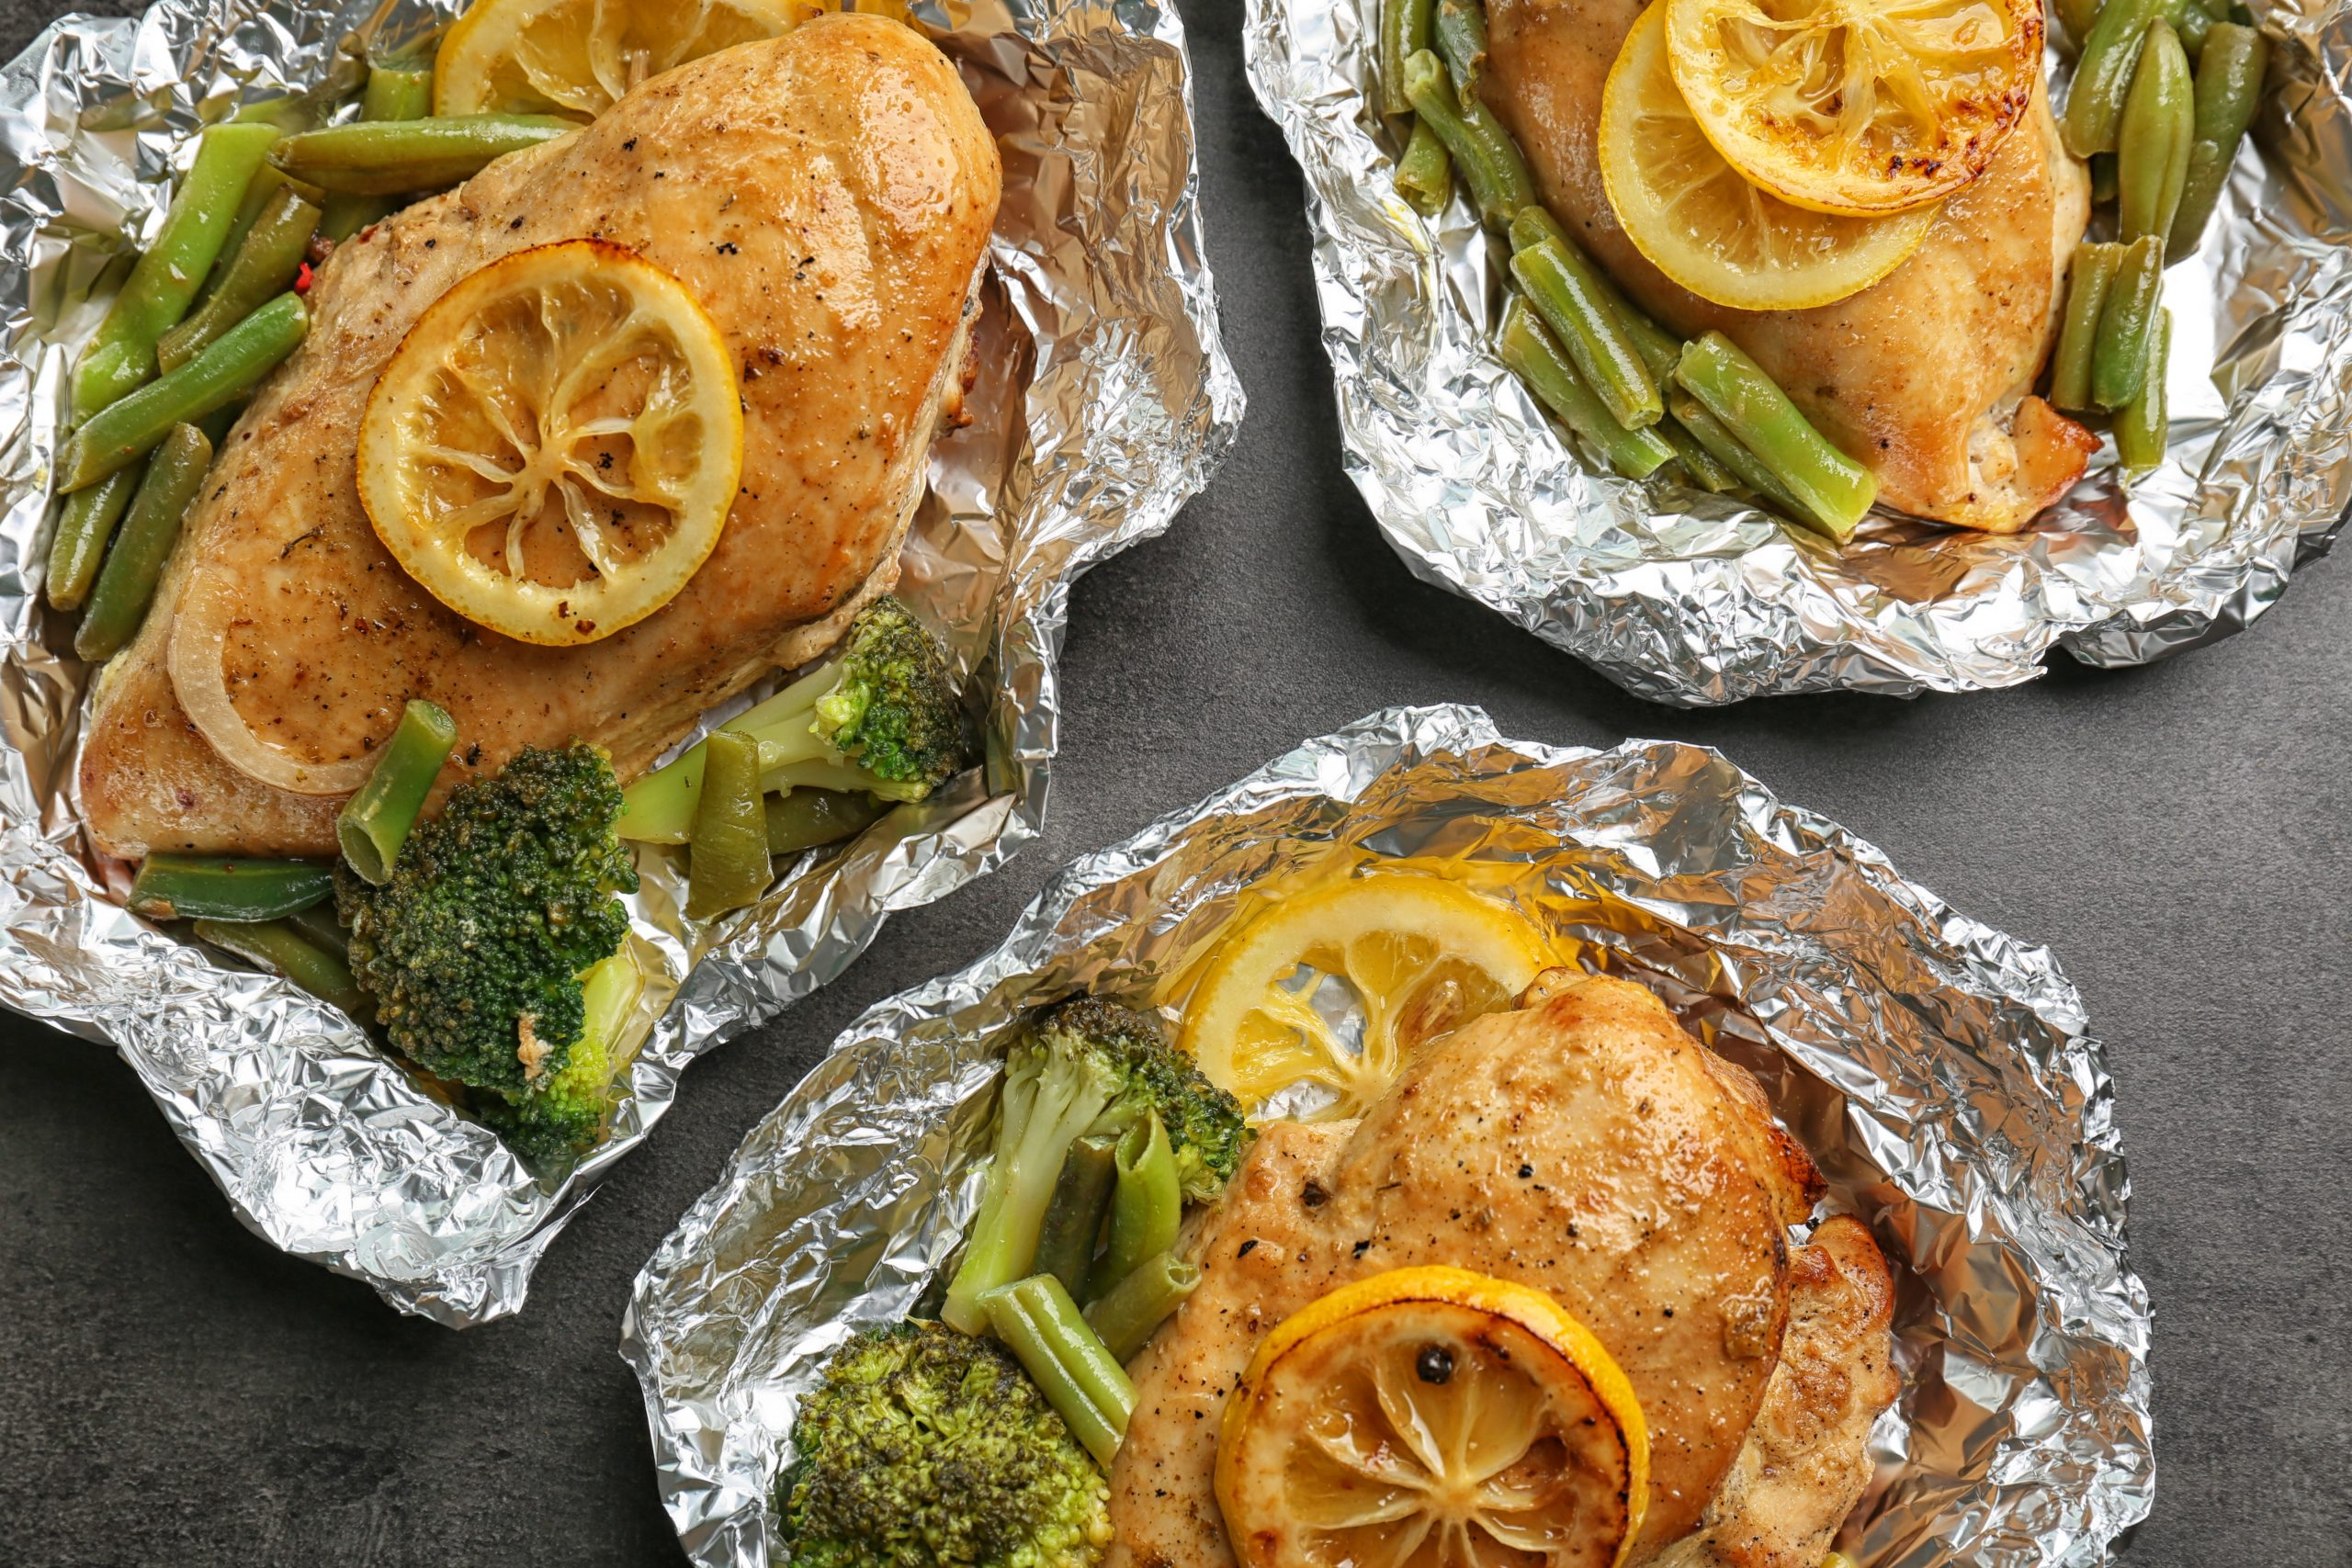 LEMON PEPPER CHICKEN FOIL PACKETS WITH BROCCOLI